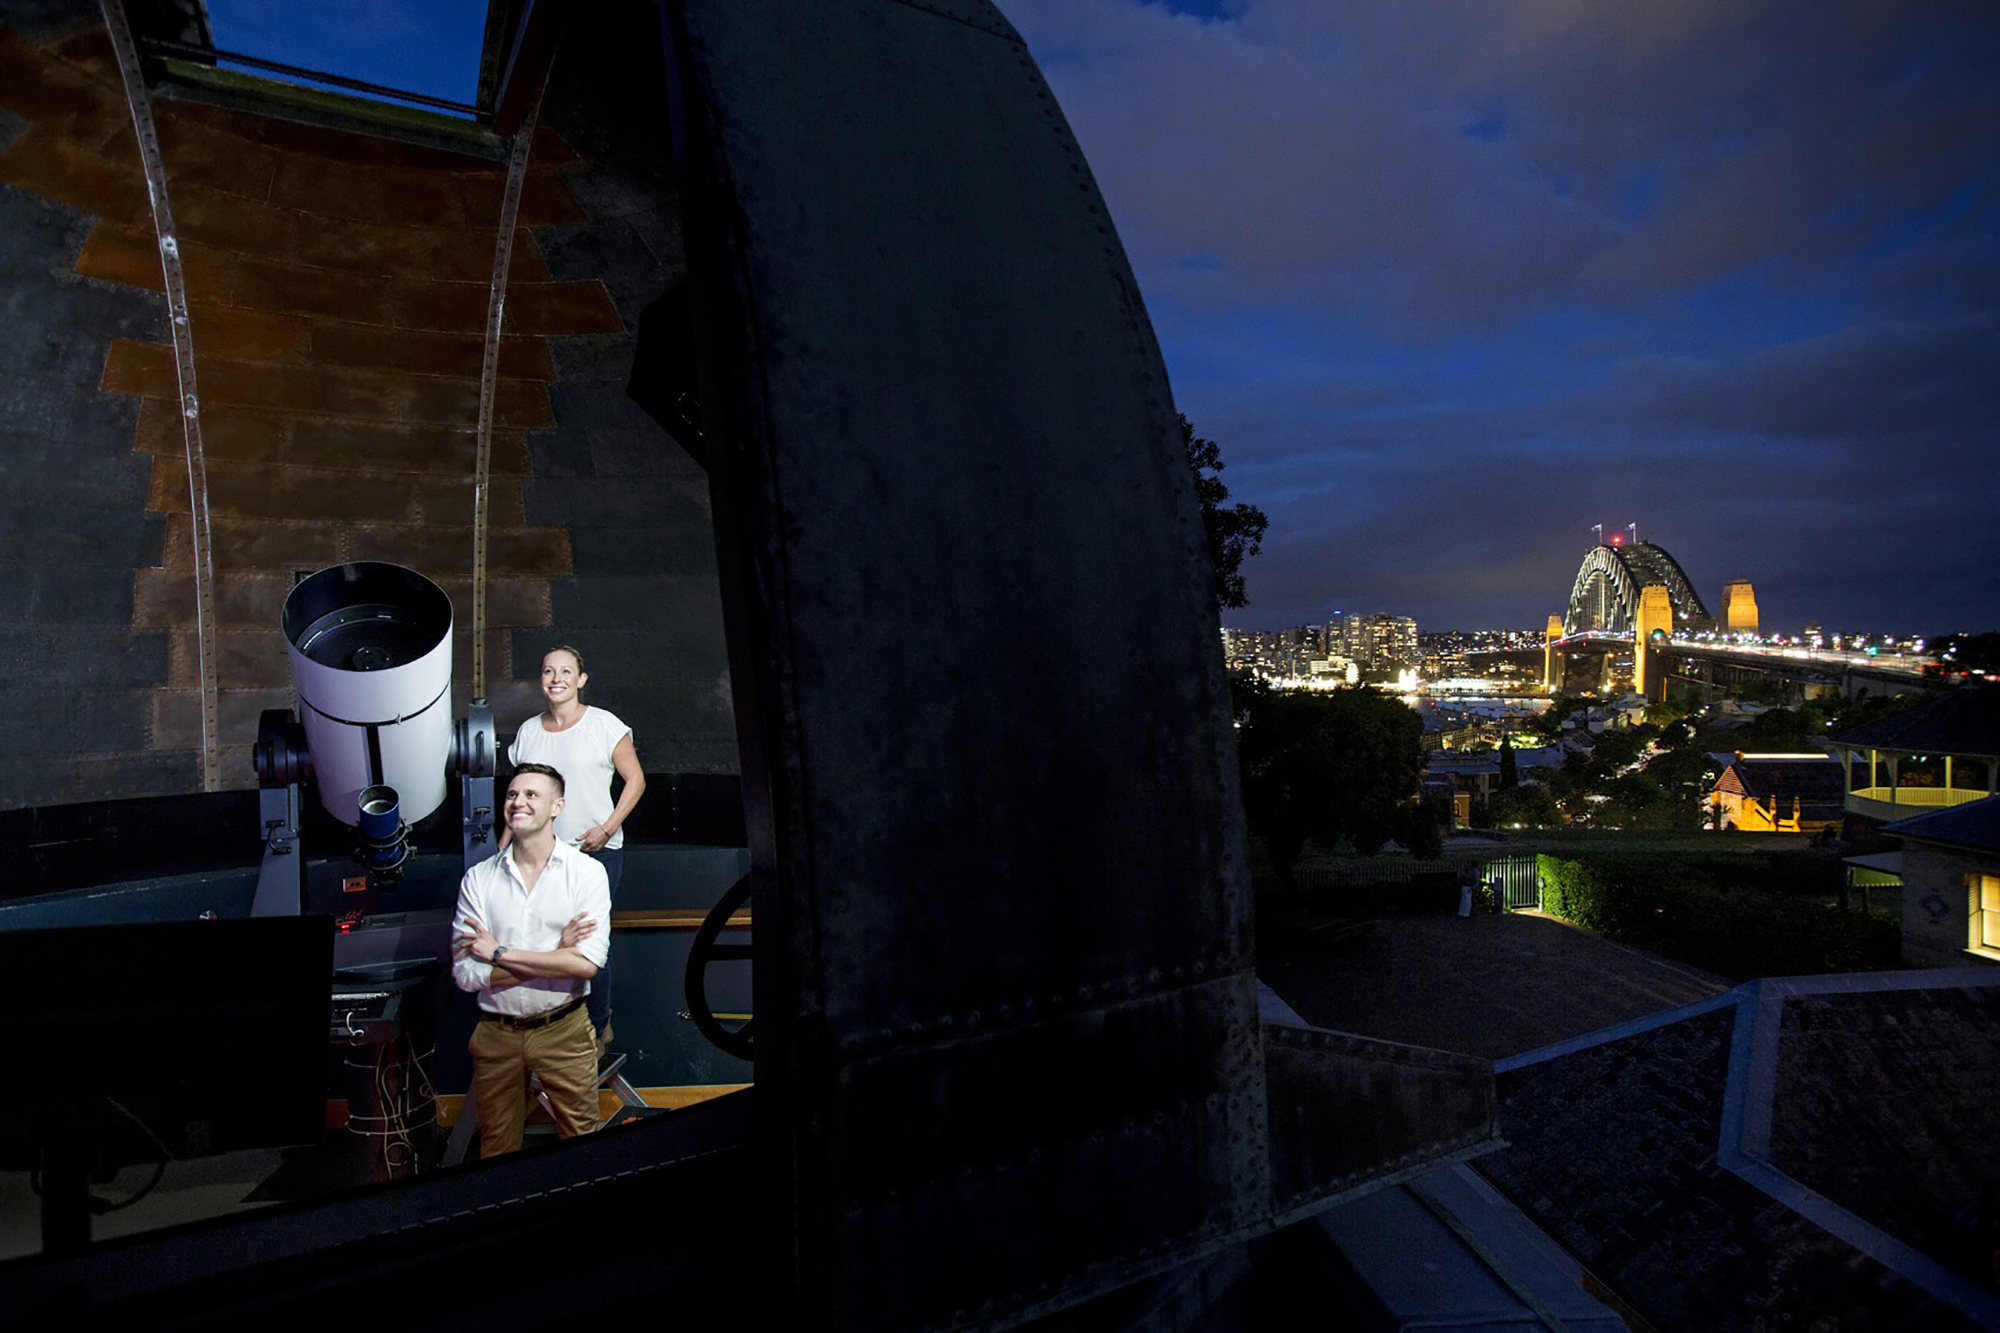 Sydney Observatory Night Tours – Museum of Applied Arts and